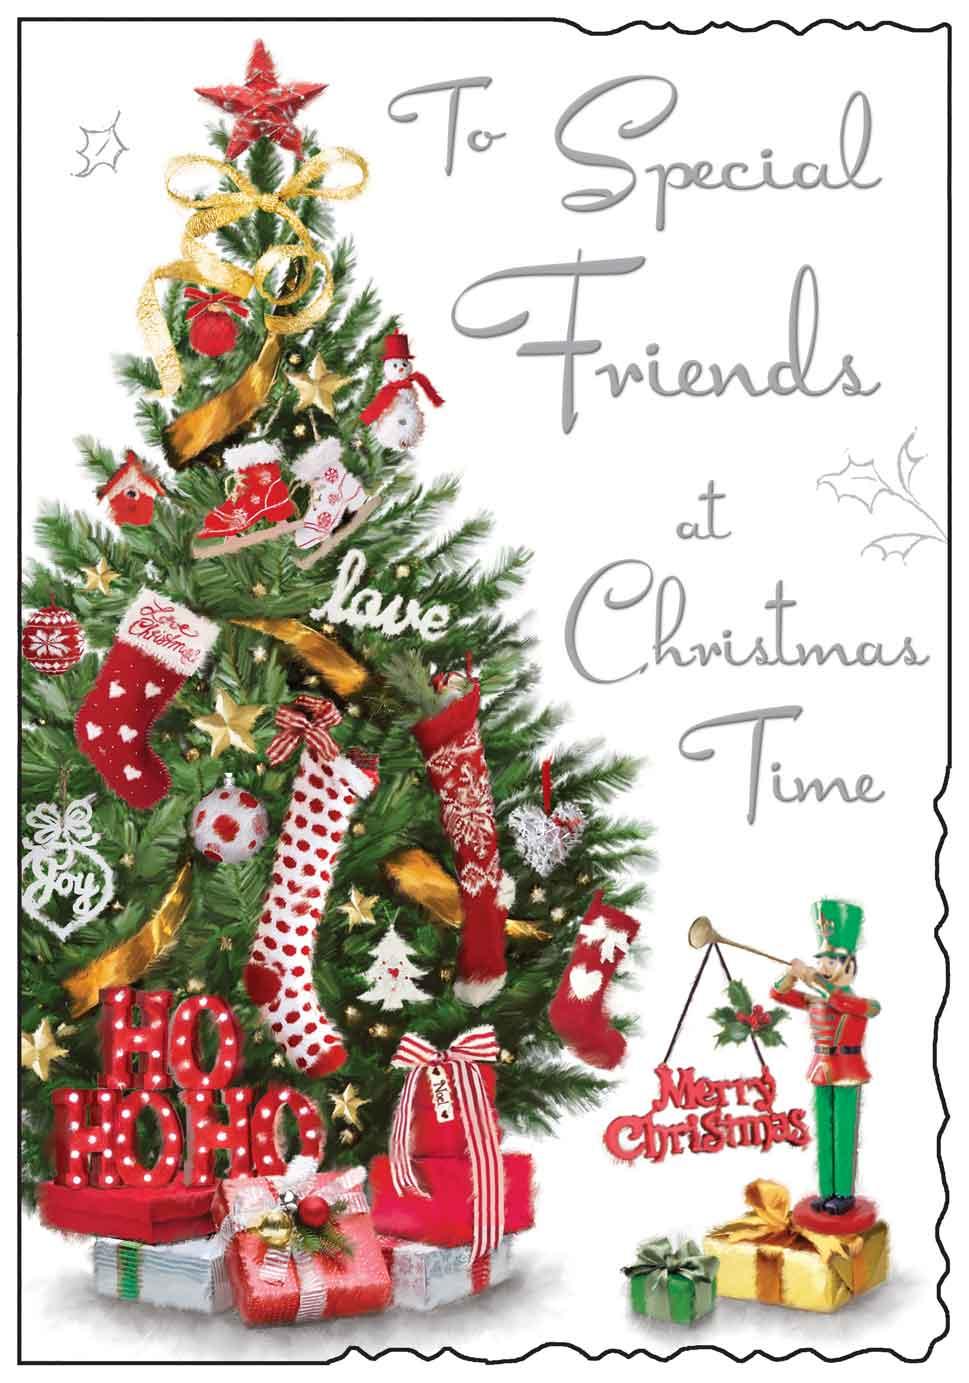 Special friends at Christmas time card